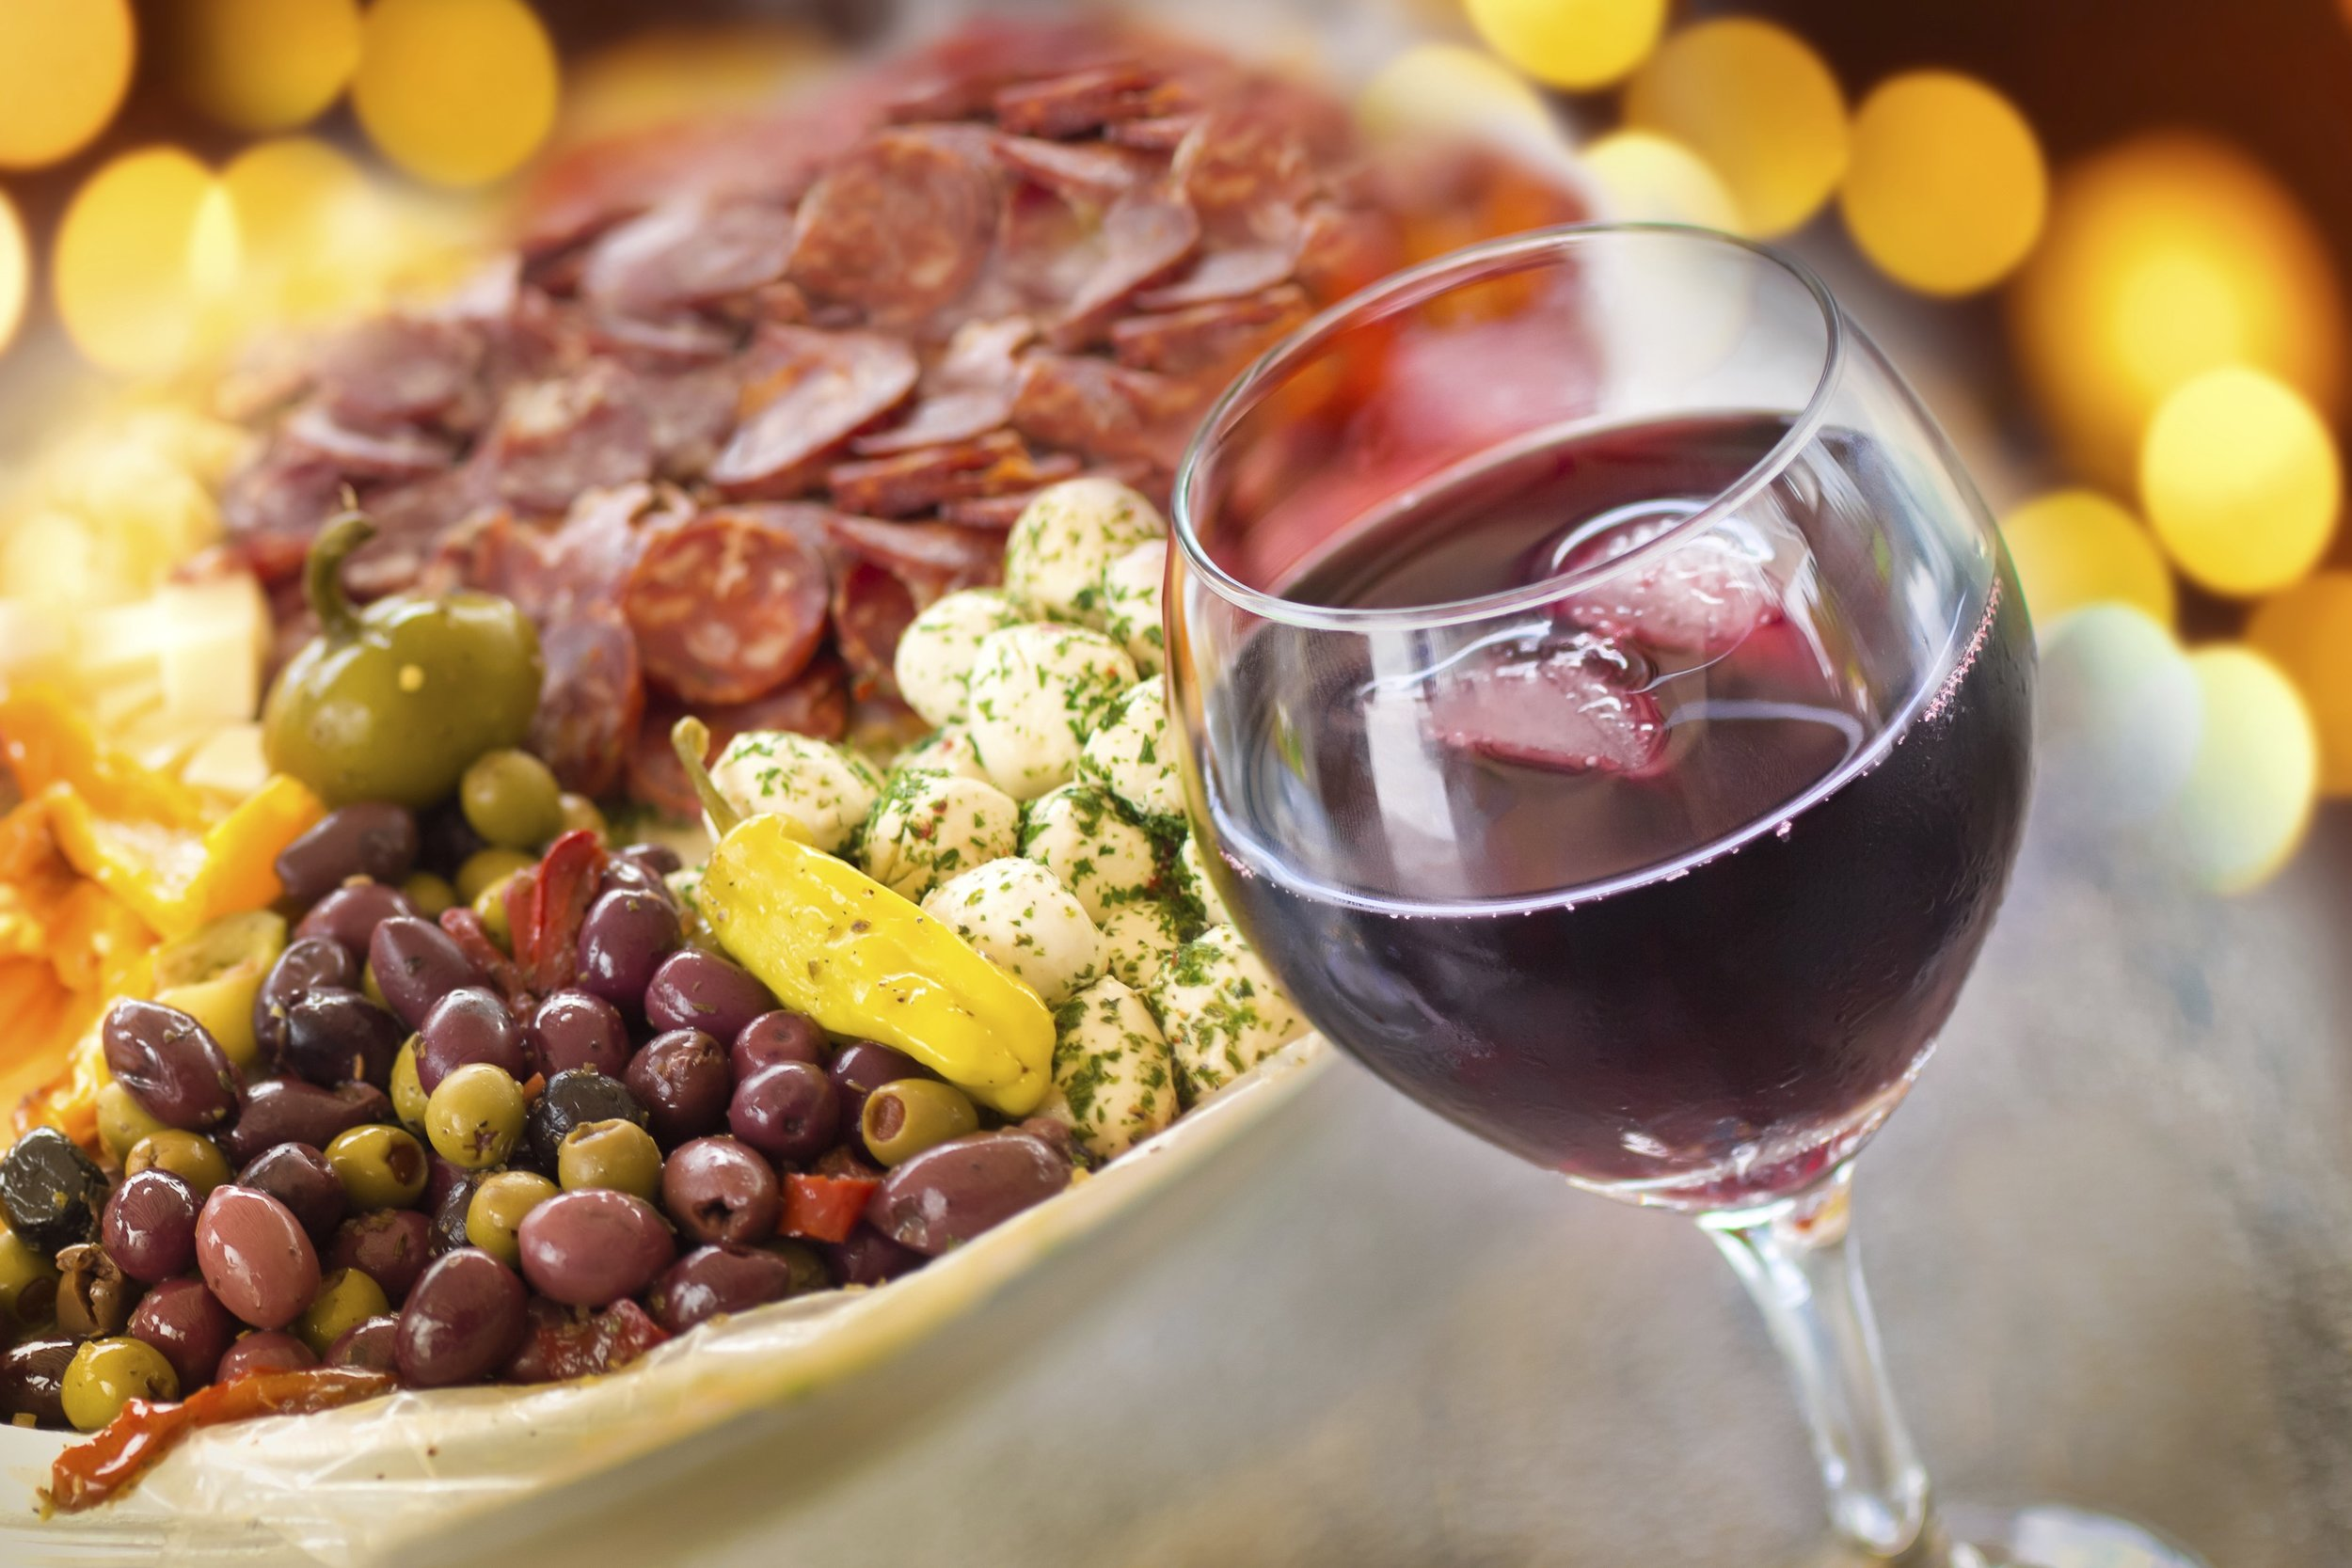 iStock_000016563261Large food and wine.jpg